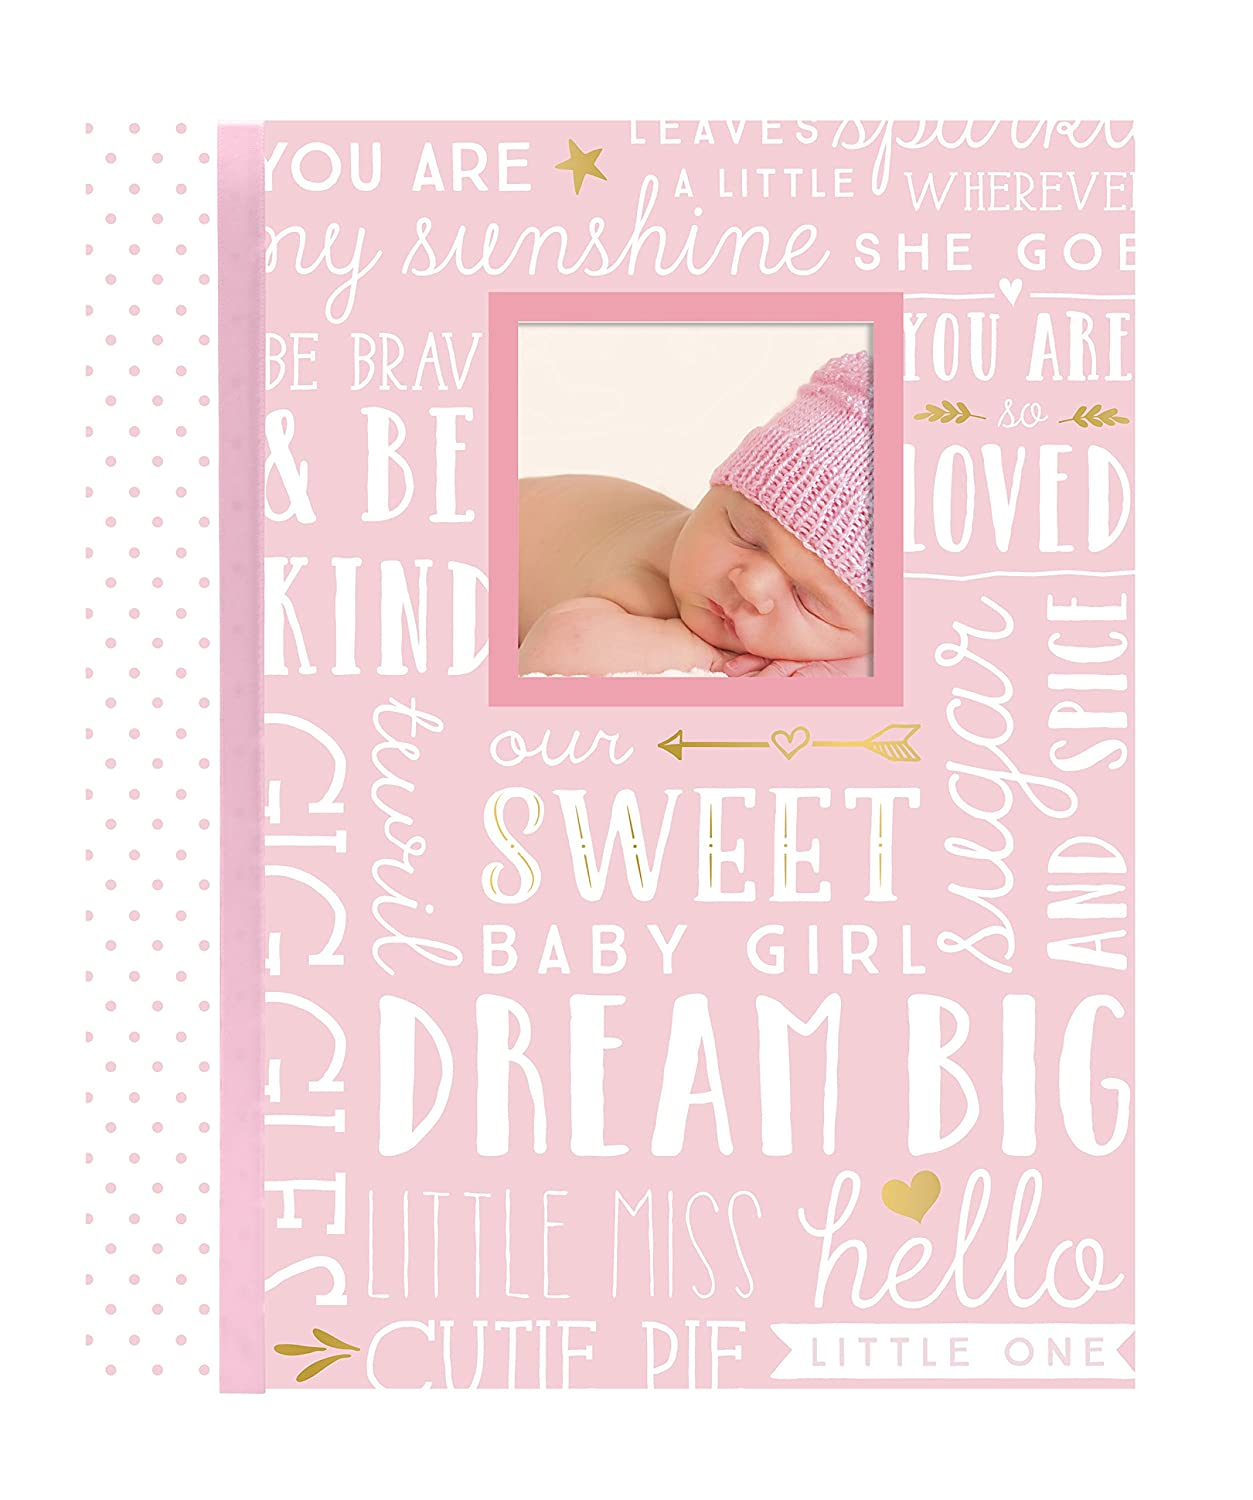 Lil Peach Dream Big Wordplay Baby Memory Book, Pink Pearhead Inc 92270